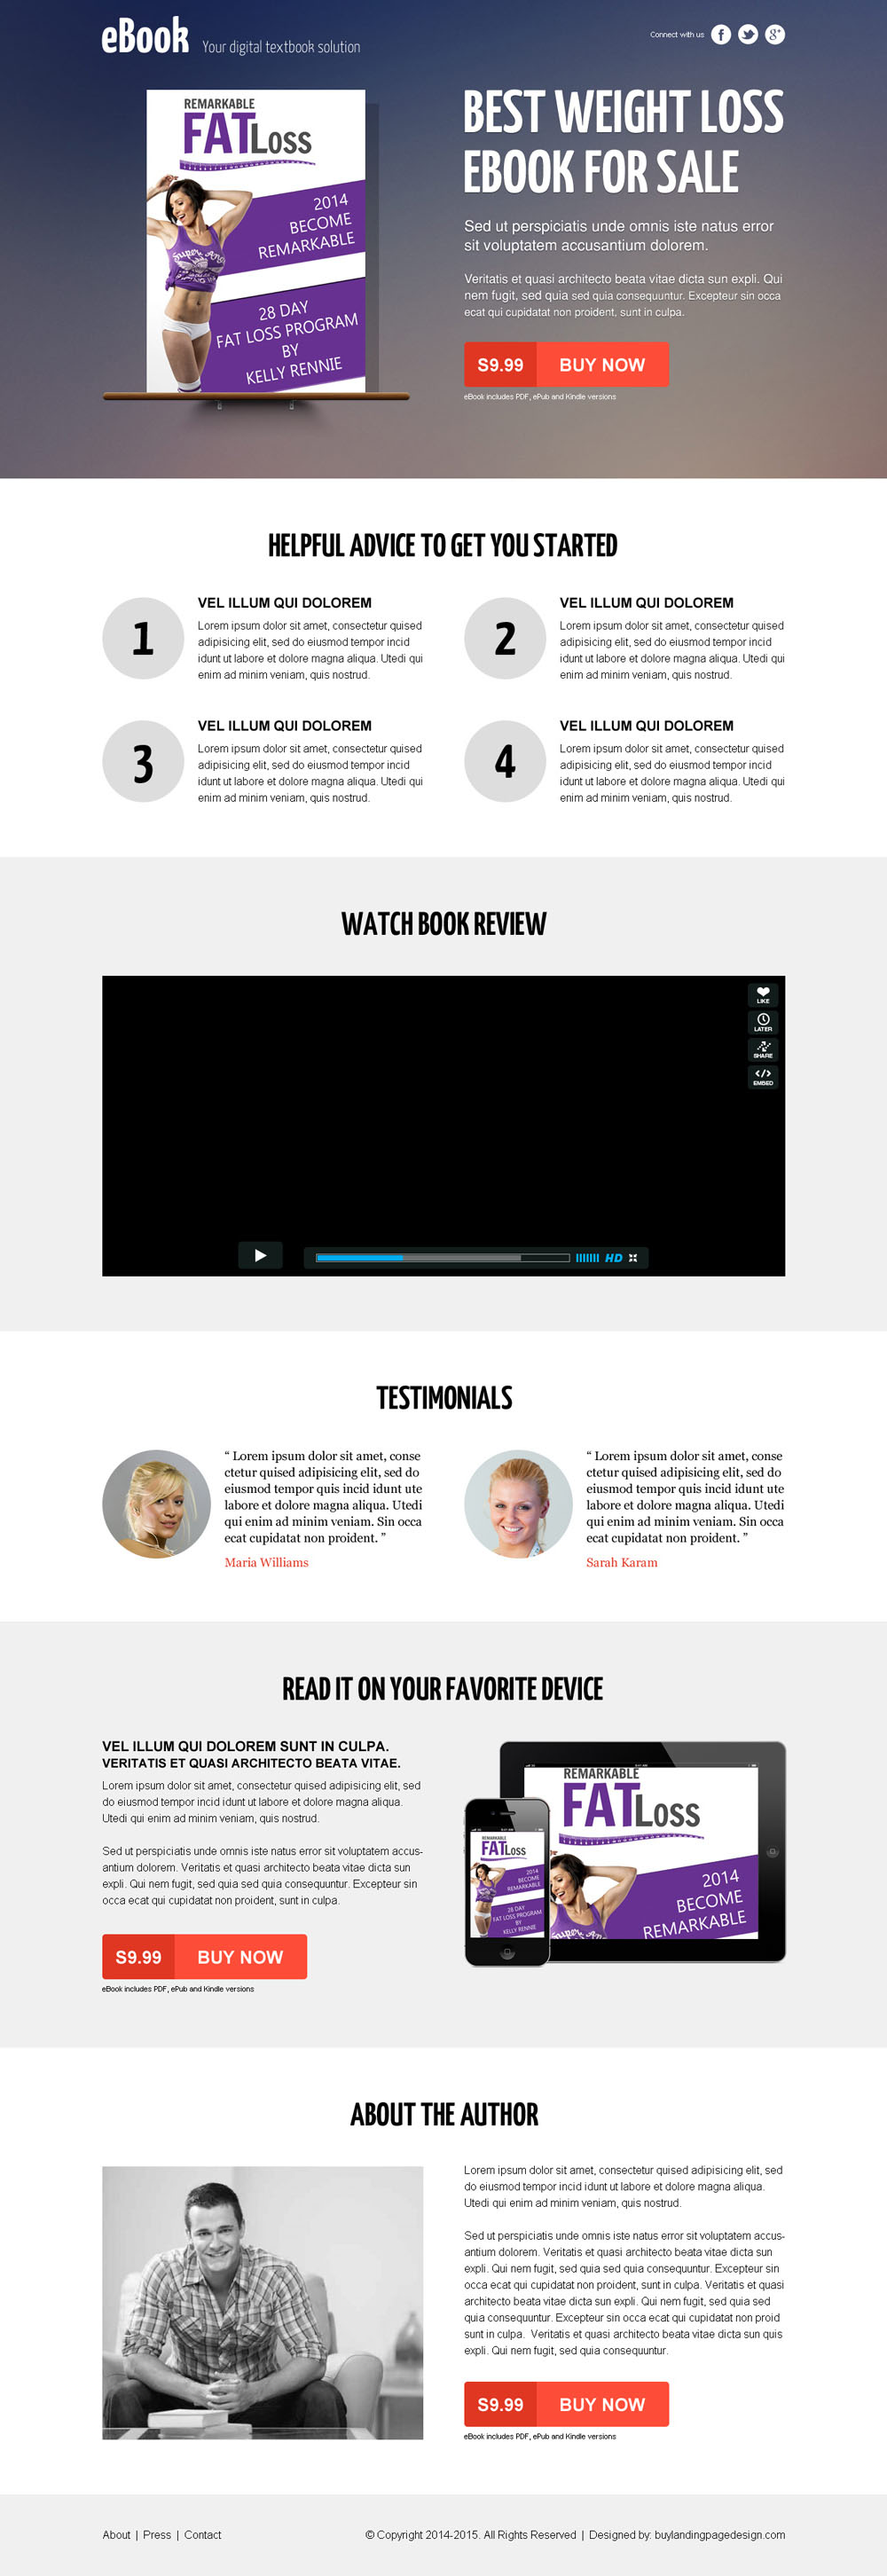 best-weight-loss-ebook-for-sale-landing-page-design-templates-example-021